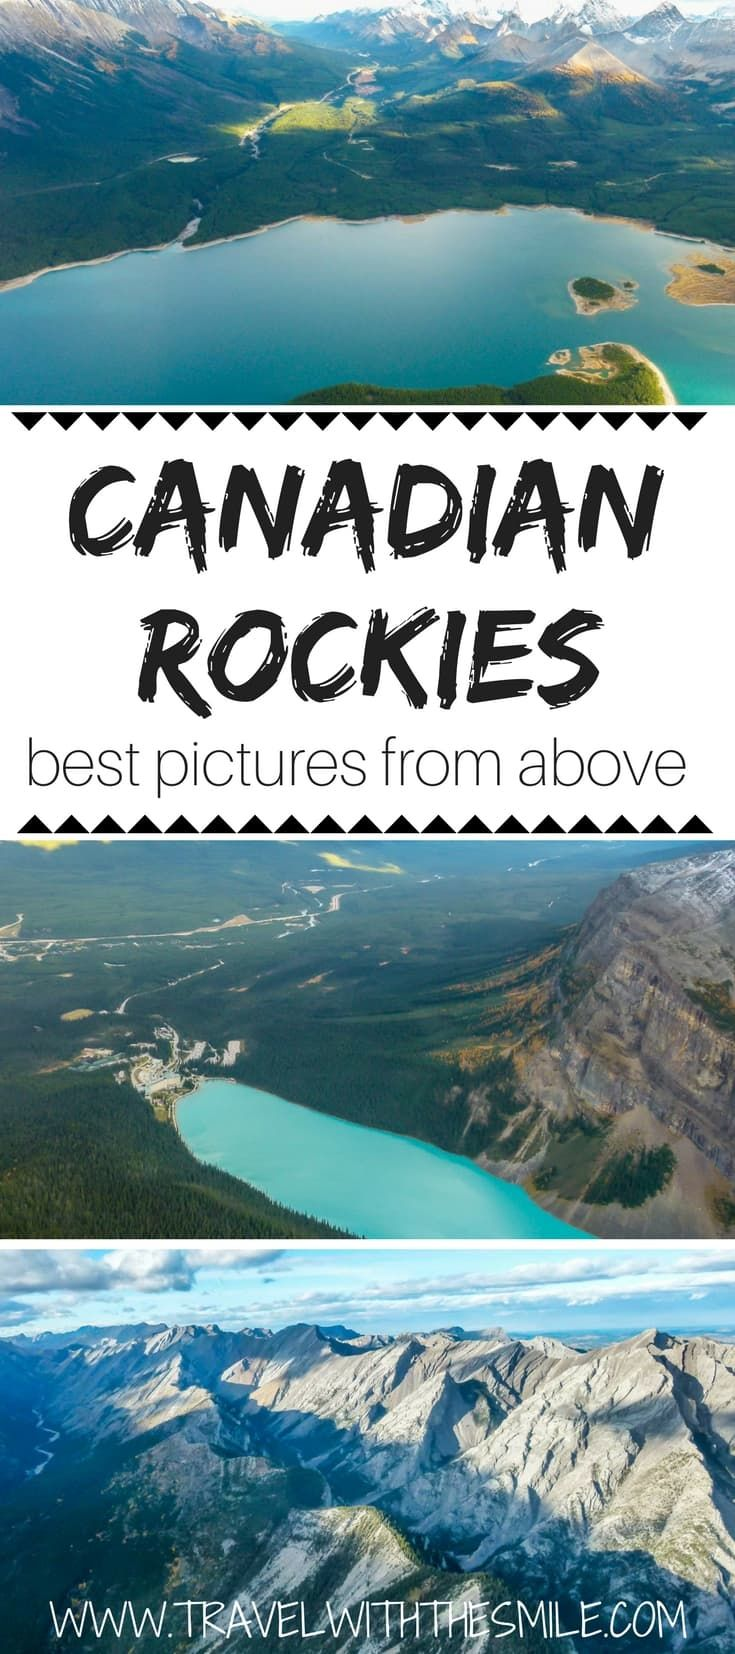 Mountains, valleys, rivers, wildlife...the beautiful Canadian Rockies. This photo essay was created to inspire you to visit Canada. You will see photos from Banff national park, Kananaskis country near Calgary and Yoho national park in British Columbia. | Canadian Rockies | Canada photos | Best Canada pictures | Banff National Park | #canada #canadianrockies #banffnationalpark